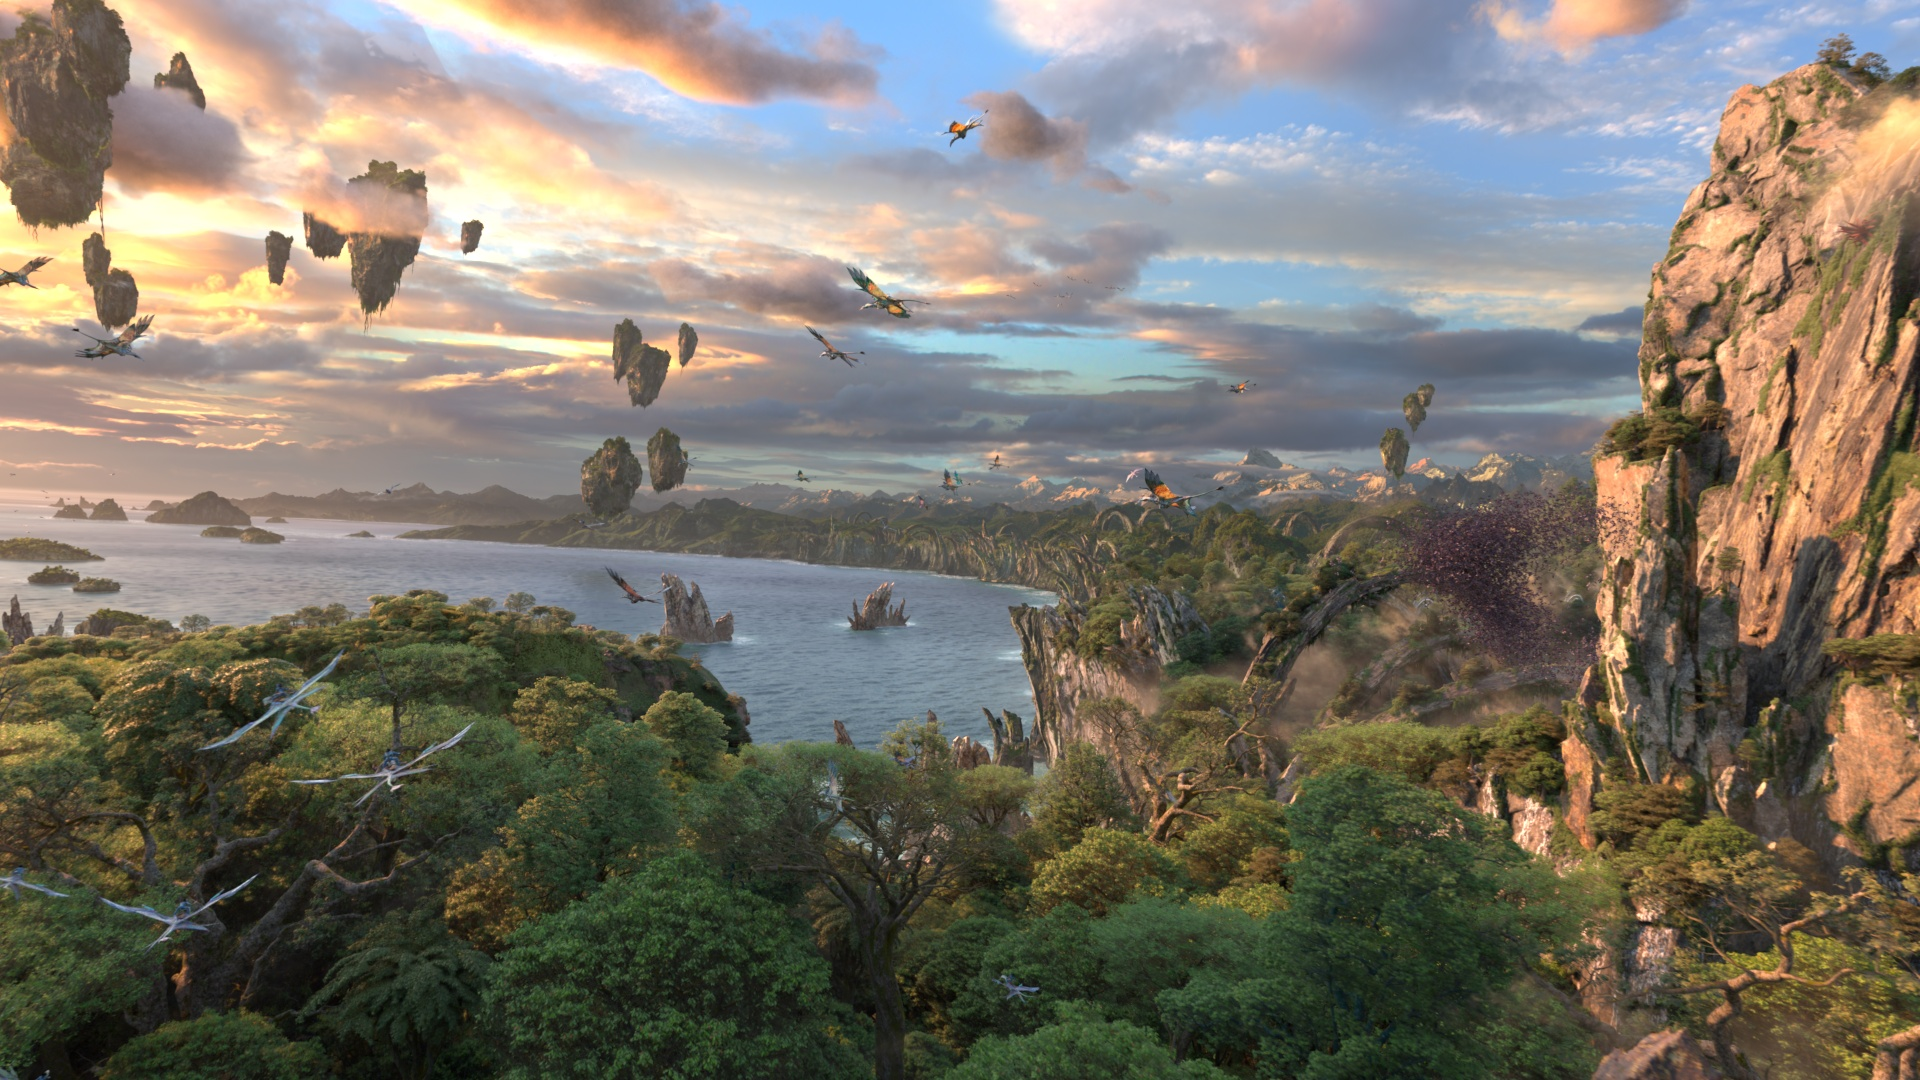 "Pictured: A scene from Avatar Flight of Passage, a 3-D thrilling adventure on Pandora � The World of Avatar at Disney's Animal Kingdom. Avatar Flight of Passage offers guests the chance to connect with an avatar and soar on a banshee over Pandora. The journey begins in the queue, as guests get a peek inside a high-tech research lab to view an avatar still in its growth state inside an amnio tank. The room features charts and screens that show just how humans will ""connect"" with a fully developed avatar for their upcoming flight on a banshee. (Disney Handout)"